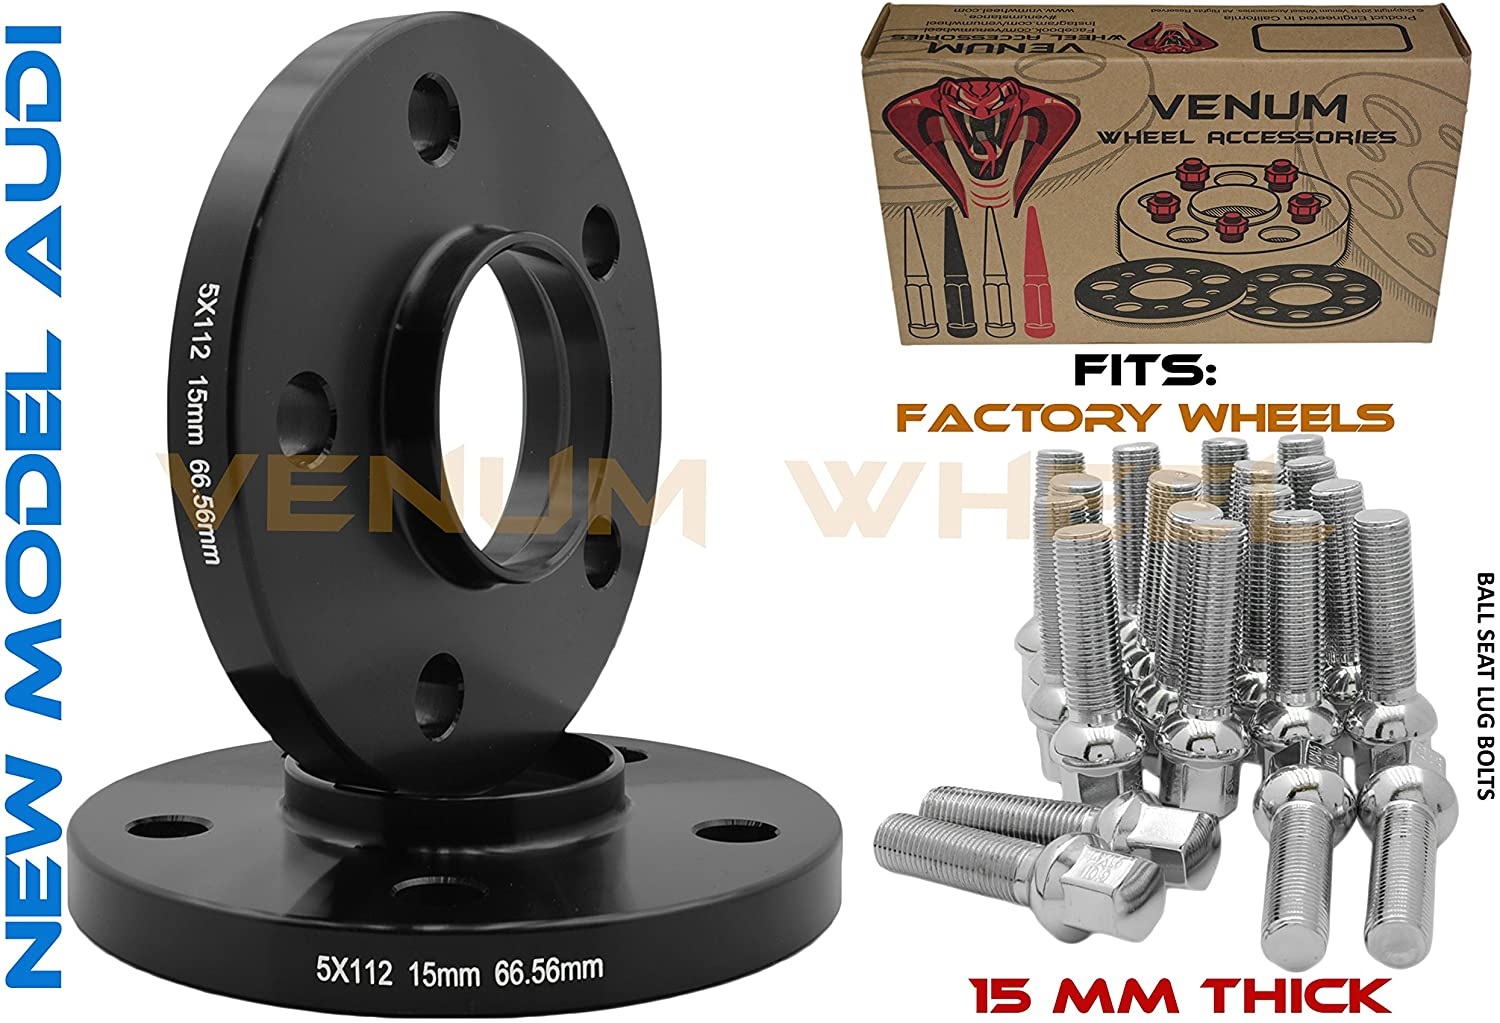 (2) 5x112 New Model Black HubCentric Wheel Spacers |15 mm Thick |14x1.5 Black Ball Seat Lug Bolts | 09-2019 A4 A5 A6 A7 A8 All Road S4 S5 S6 S7 RS5 RS7 Q5 SQ5 W/Factory Wheels